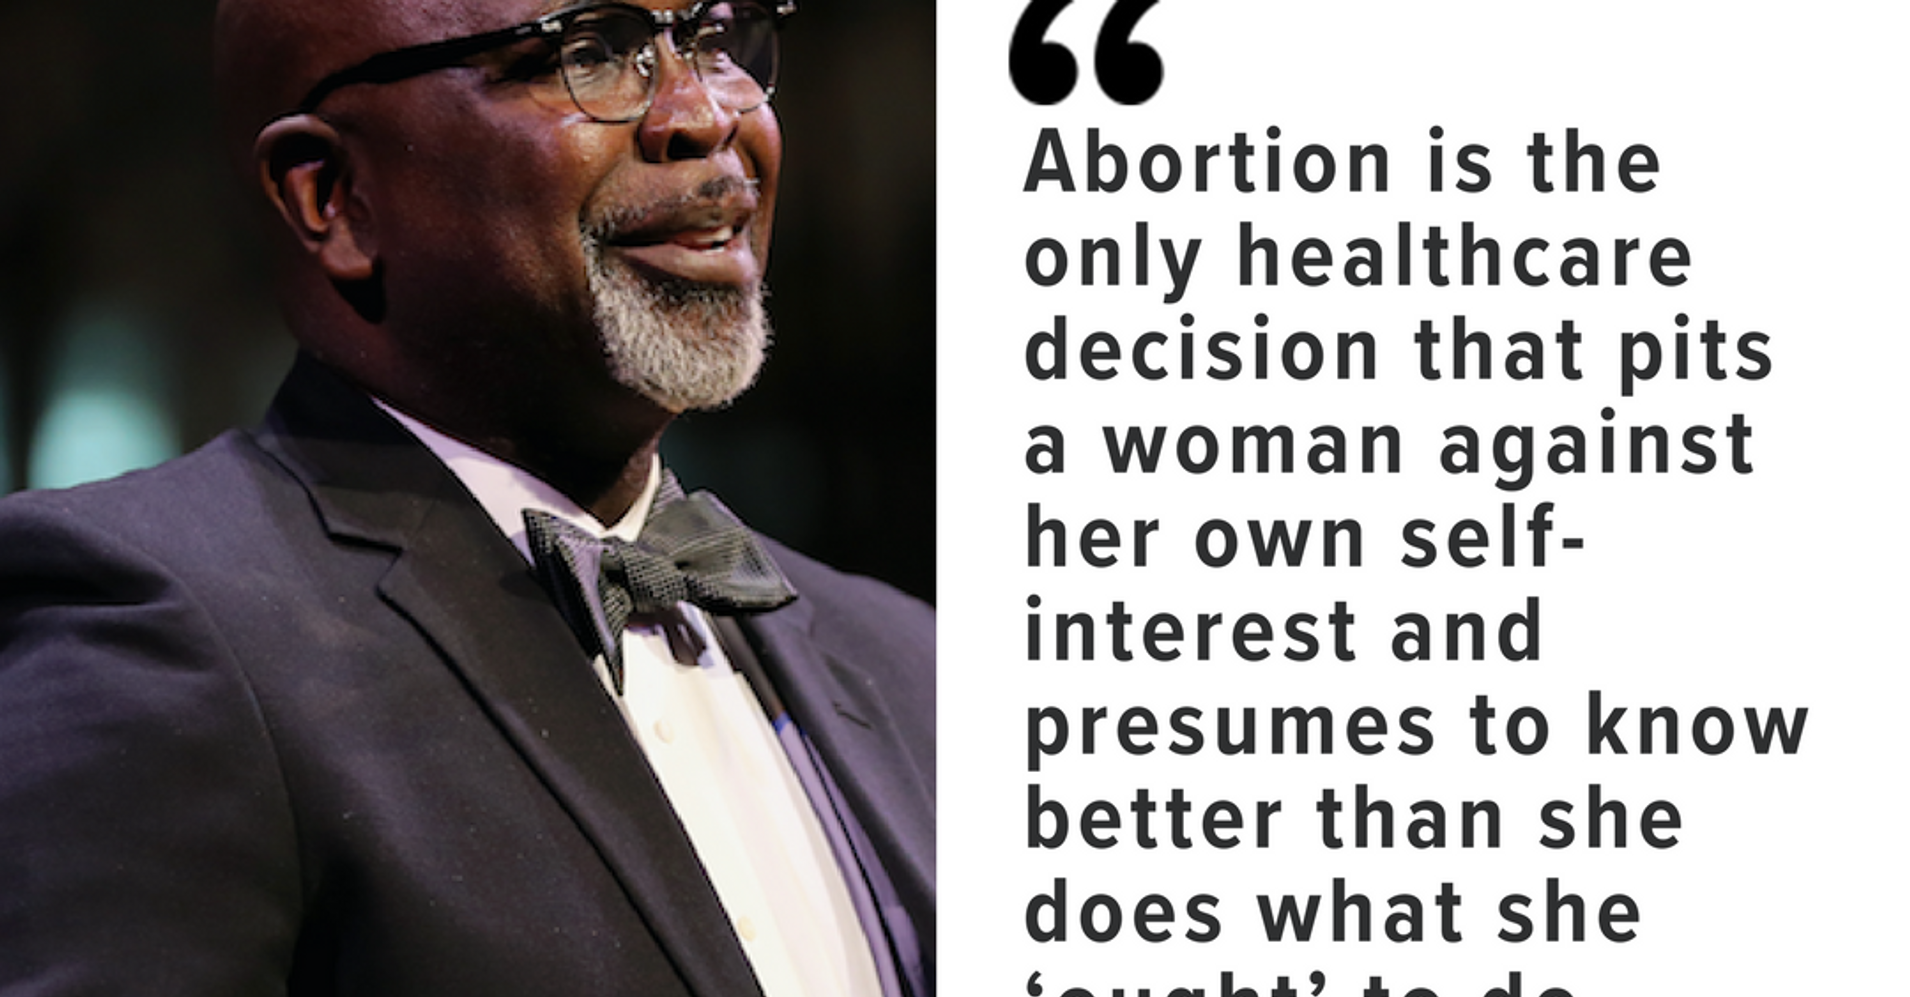 Meet The Christian OB GYN Making A Moral Argument For